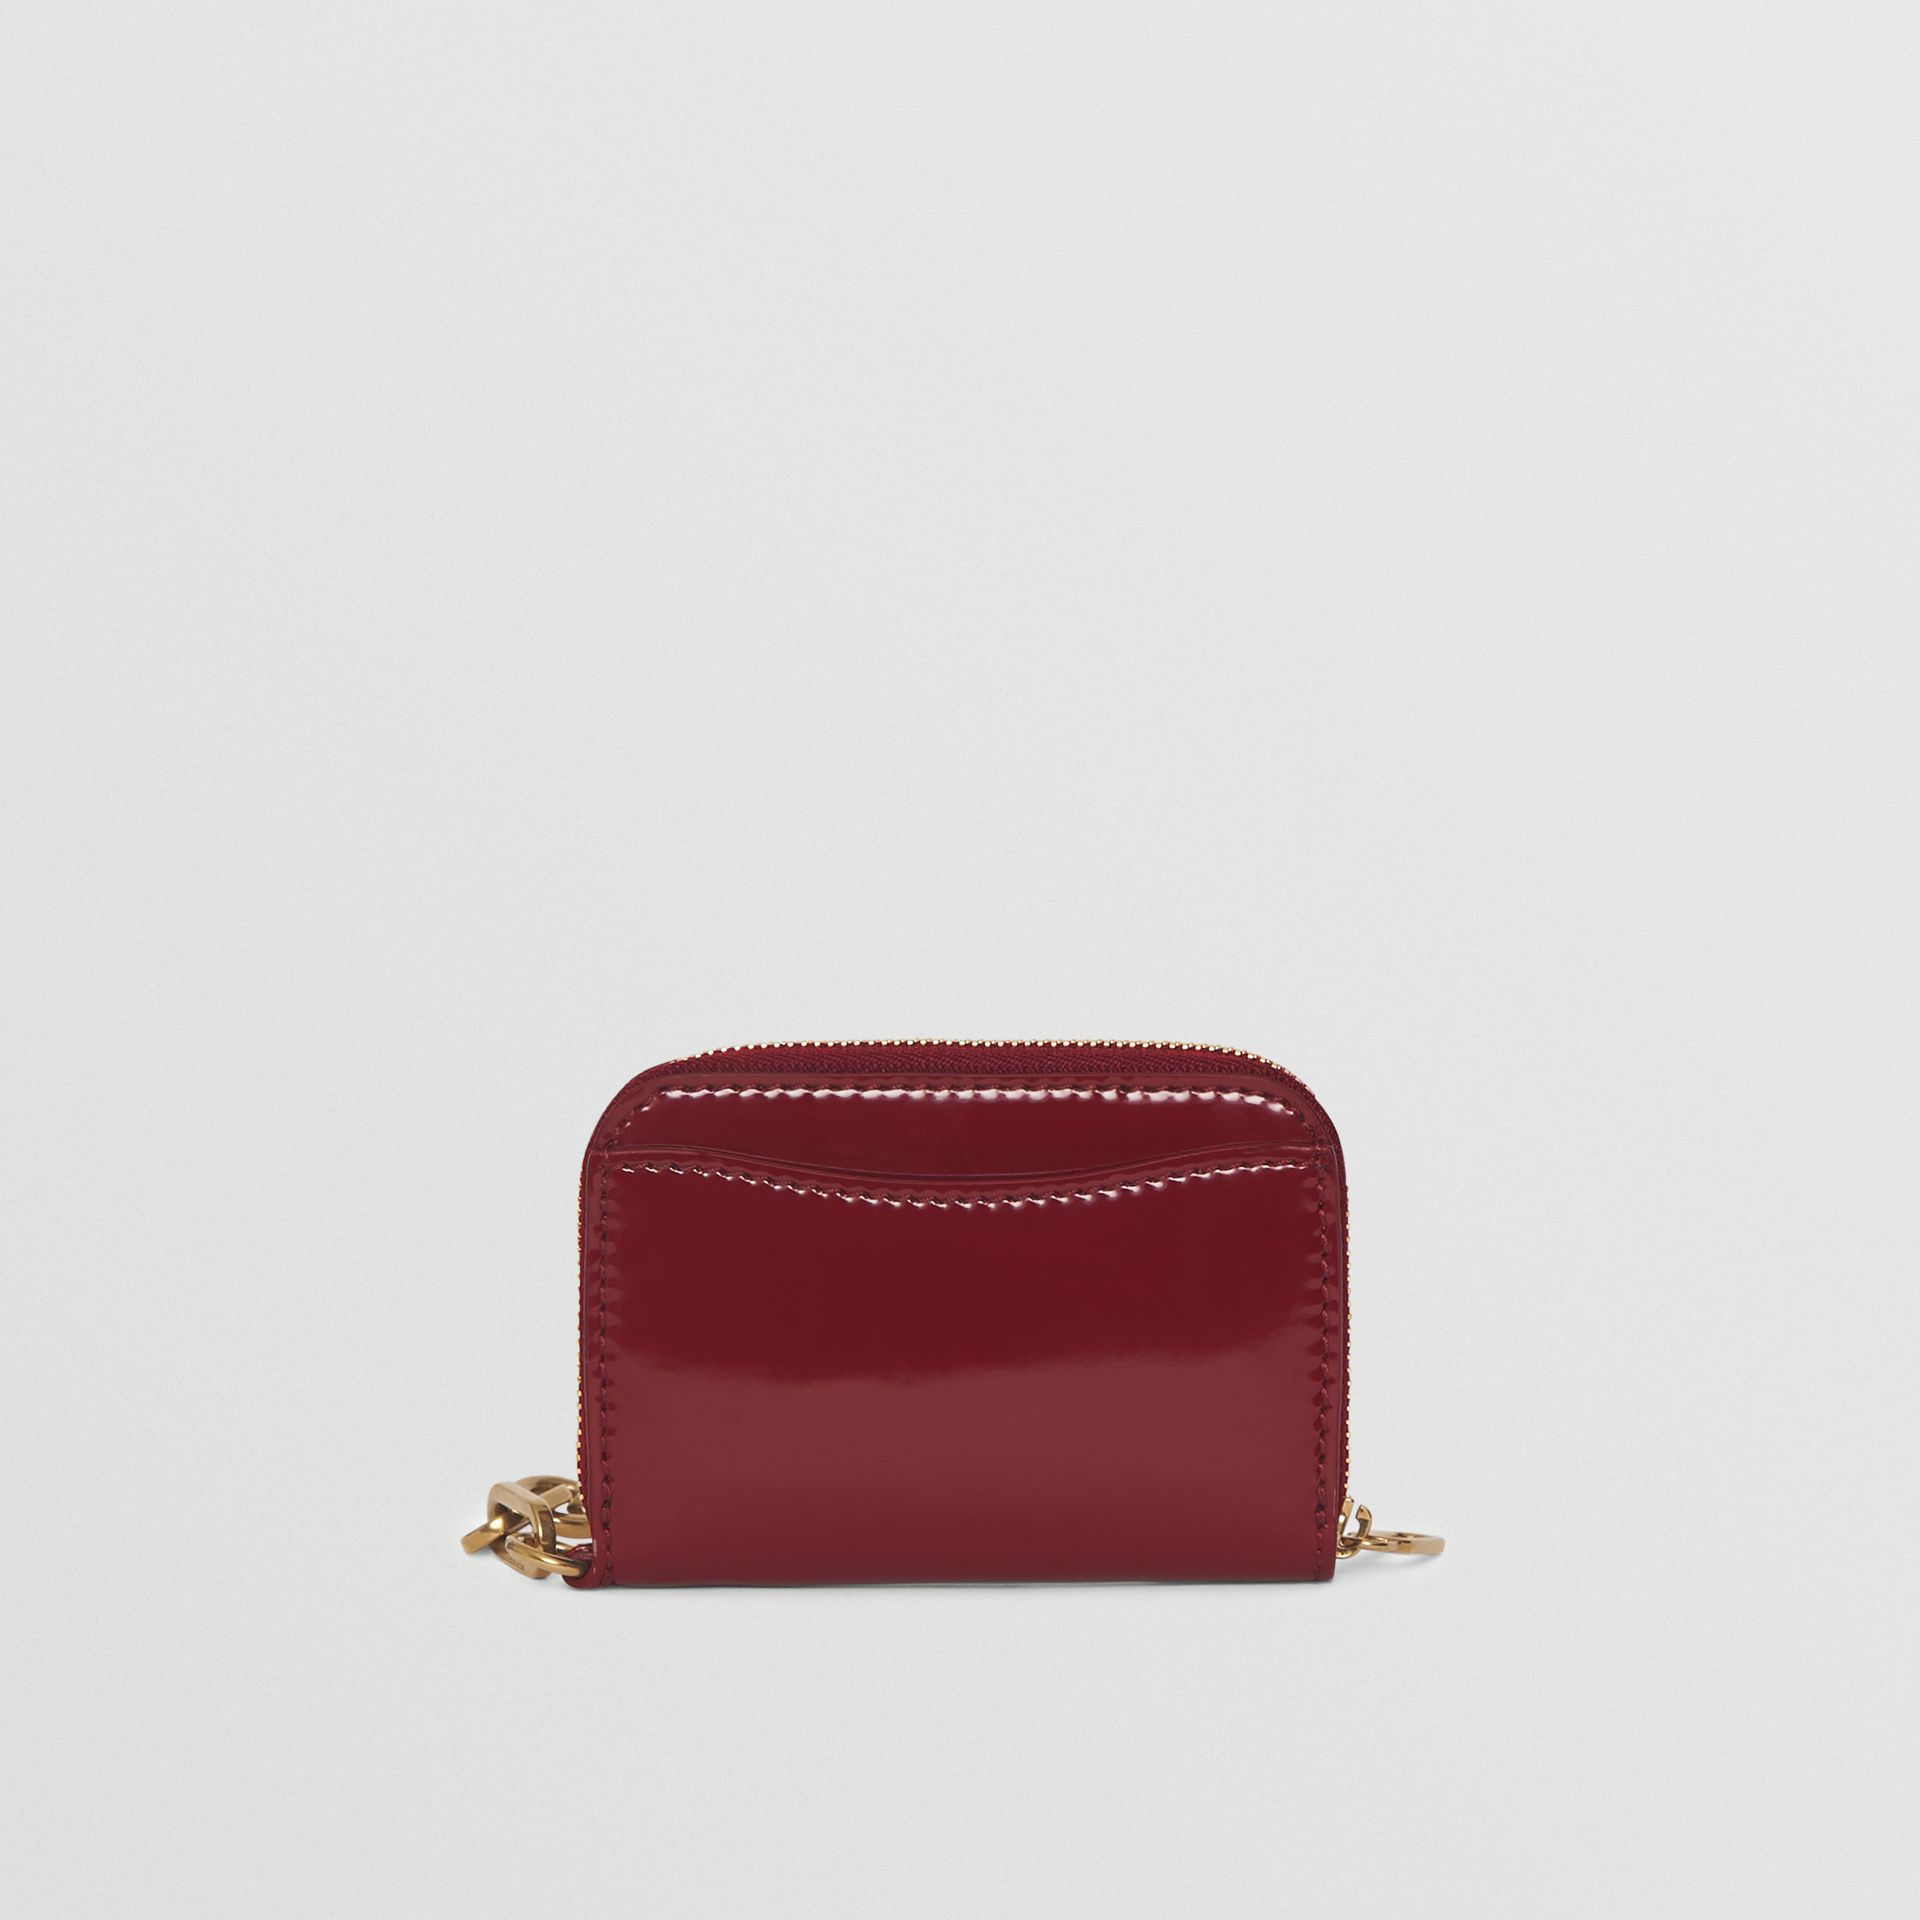 Link Detail Patent Leather Ziparound Wallet in Crimson - Women | Burberry - gallery image 5